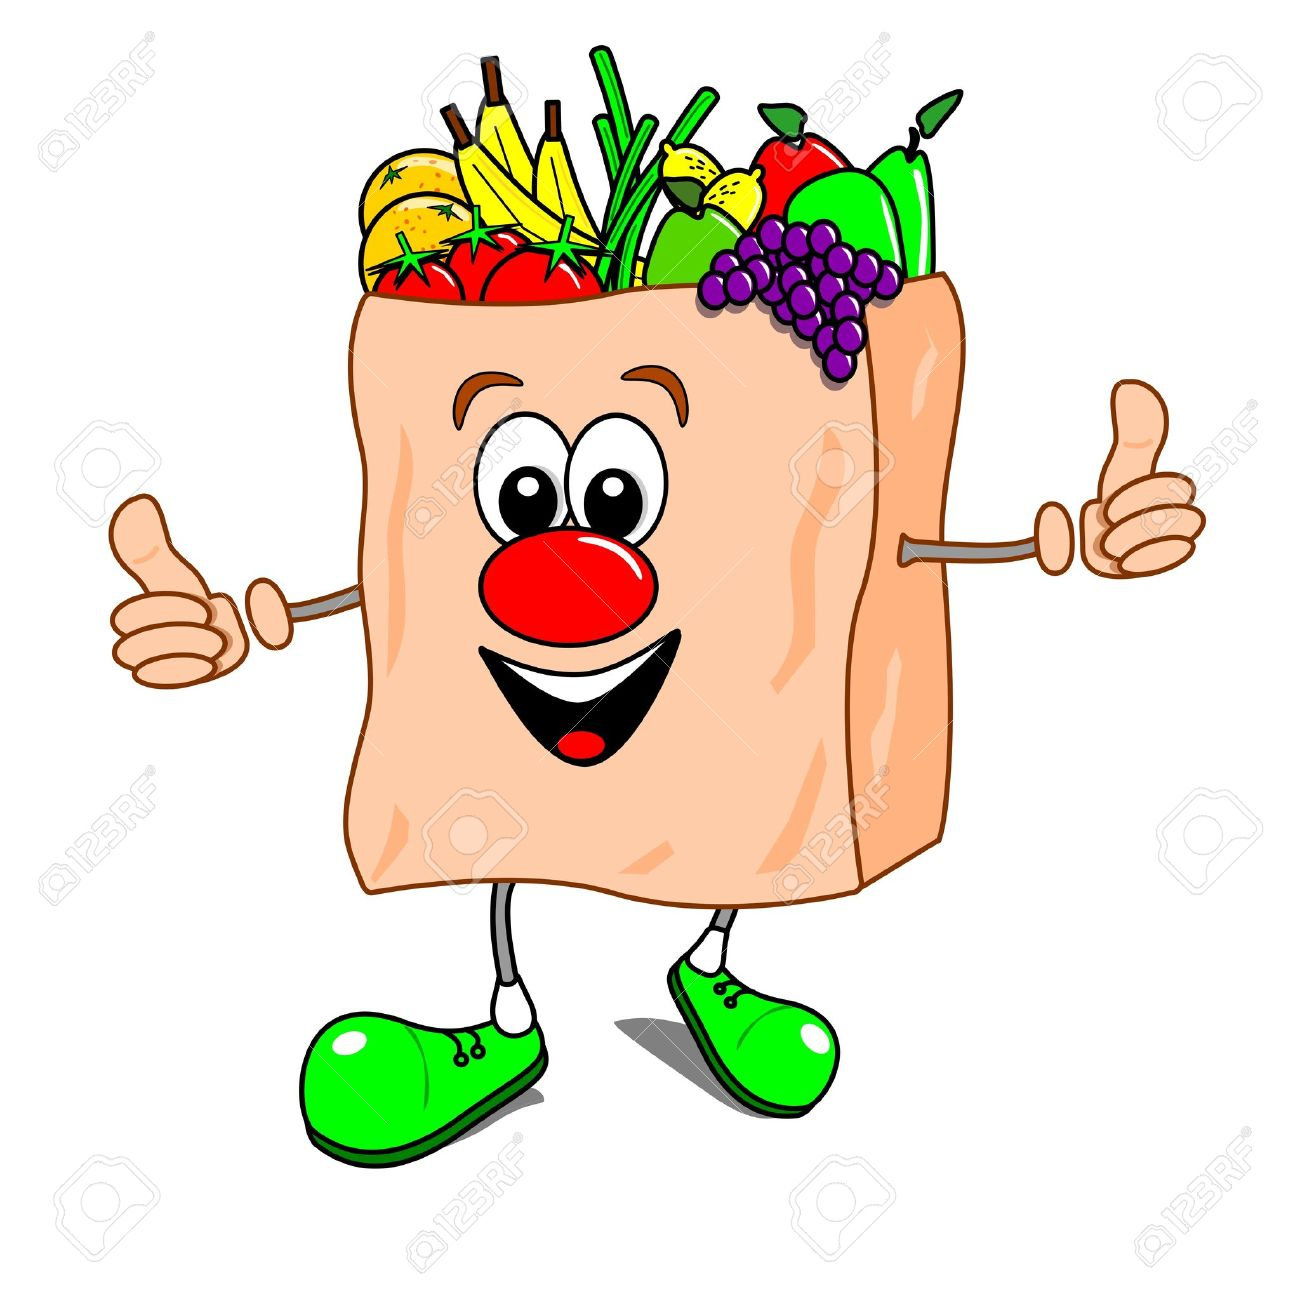 Cartoon illustration of a shopping bag with fruit and vegetables Stock Vector - 10796679